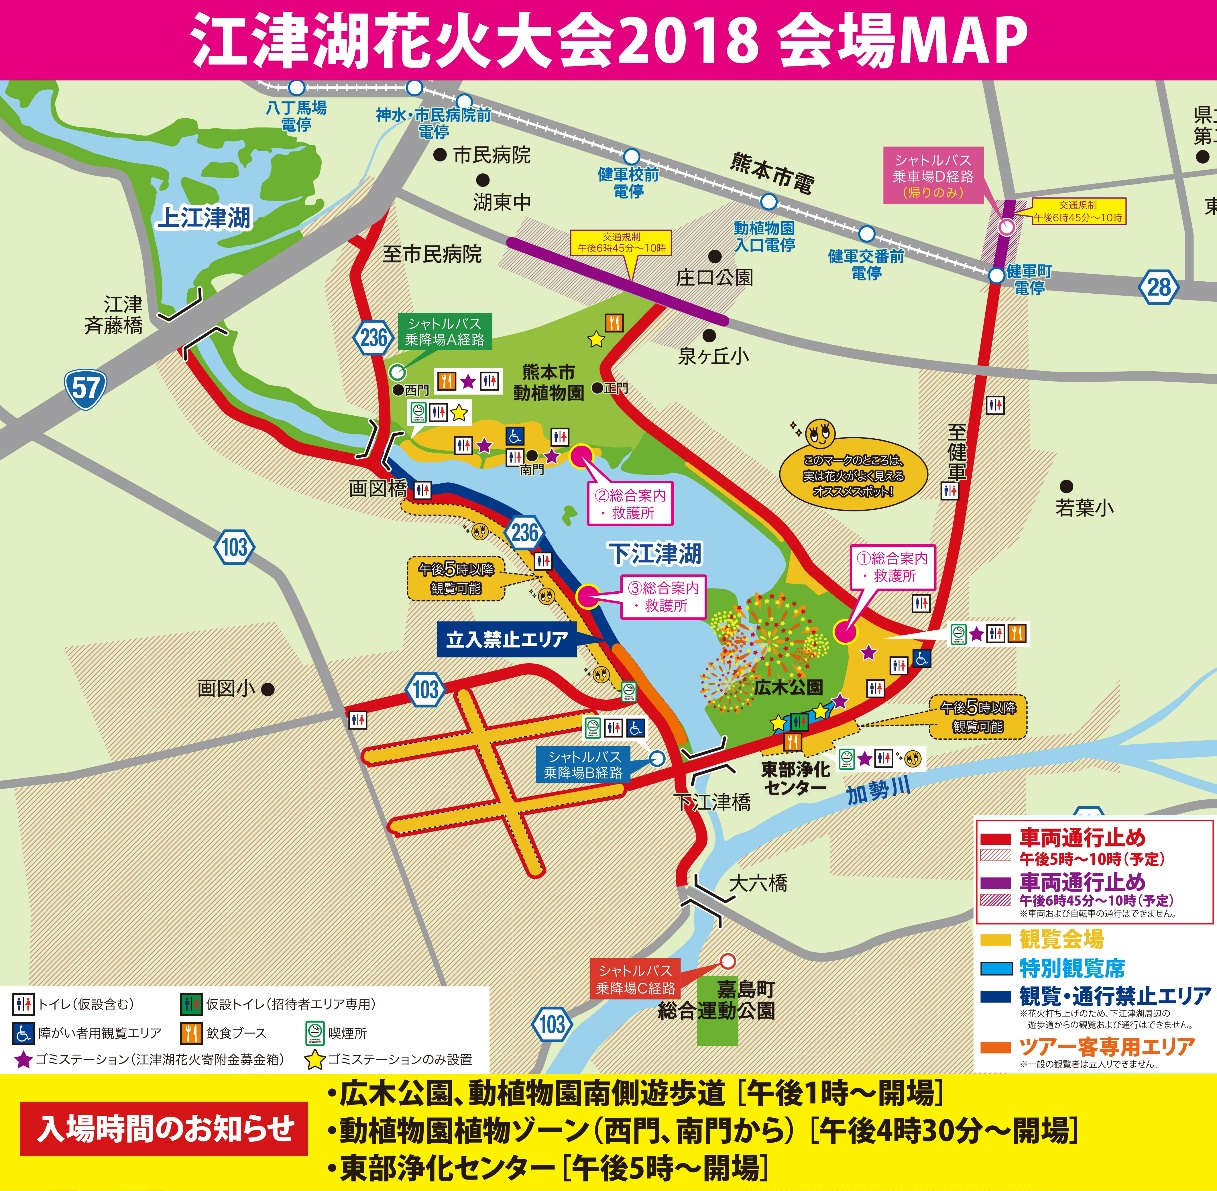 event-map